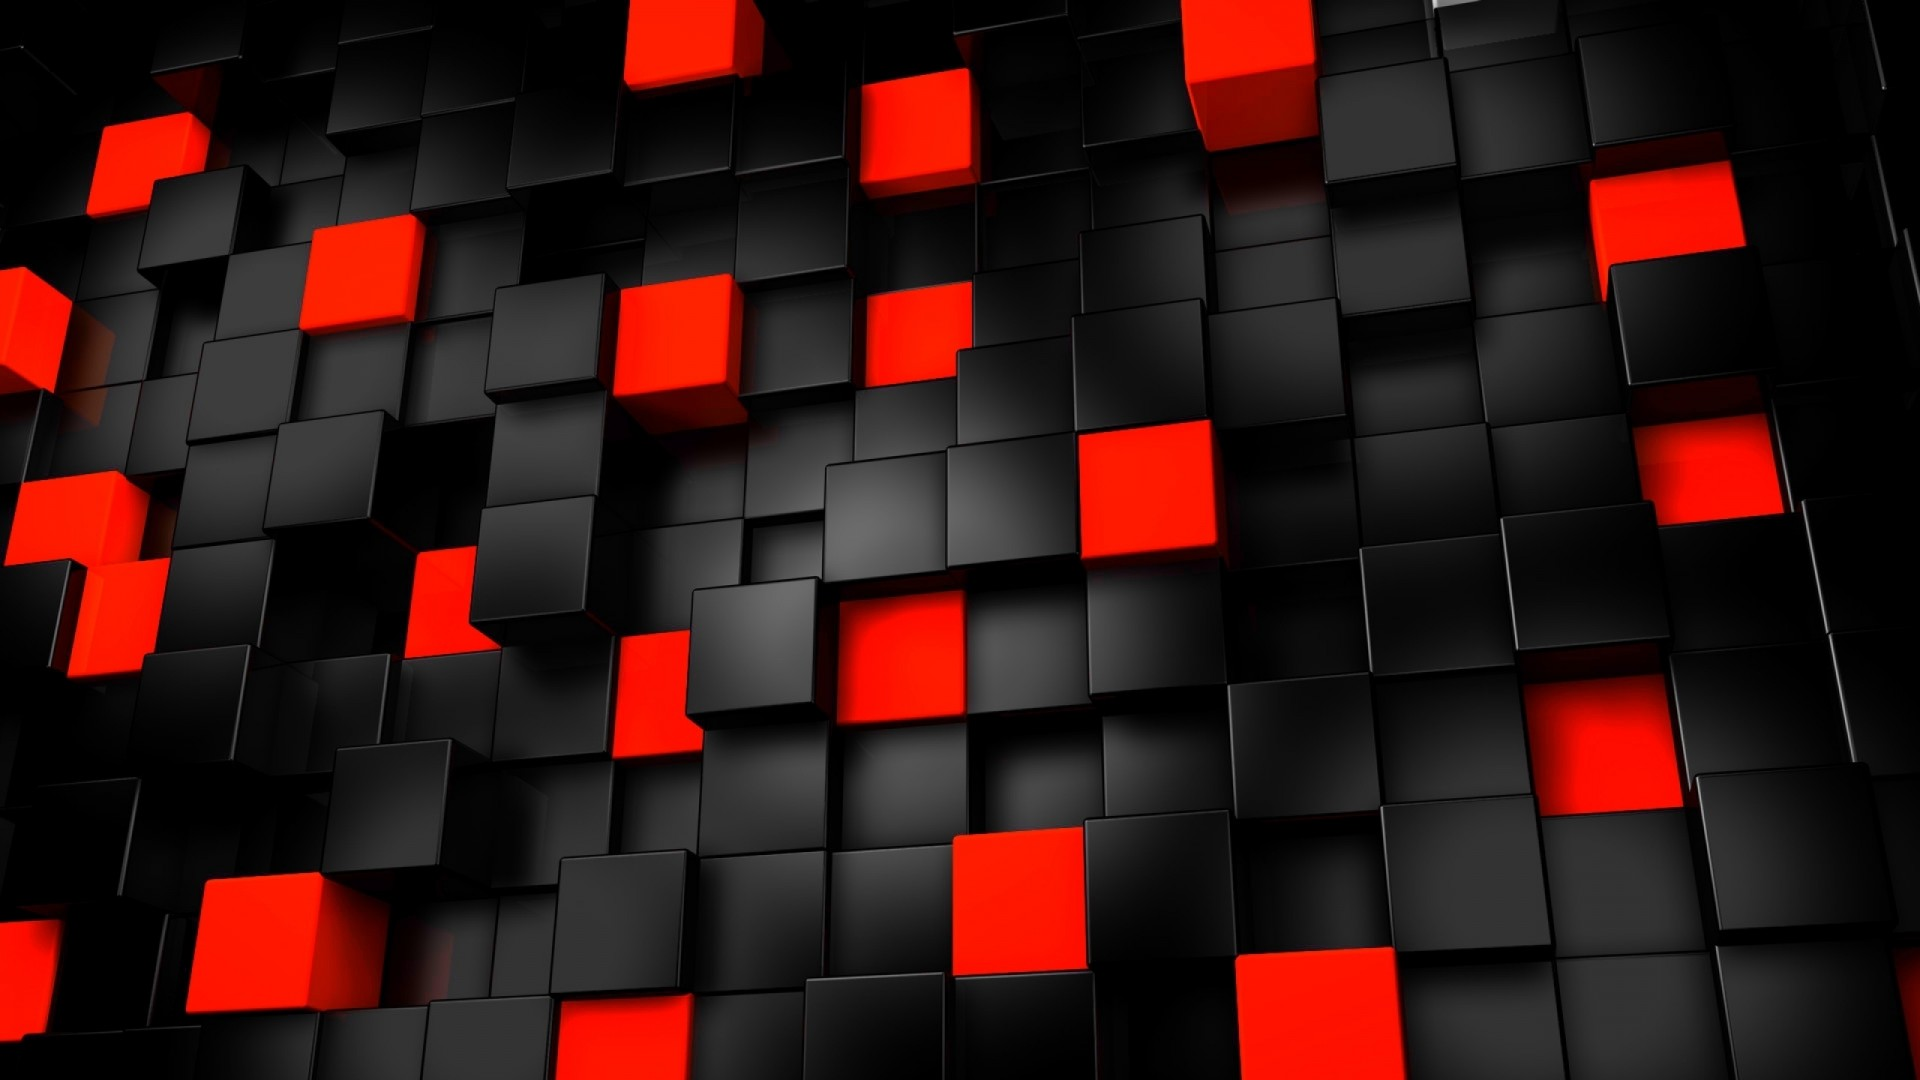 30 abstract wallpaper black and red